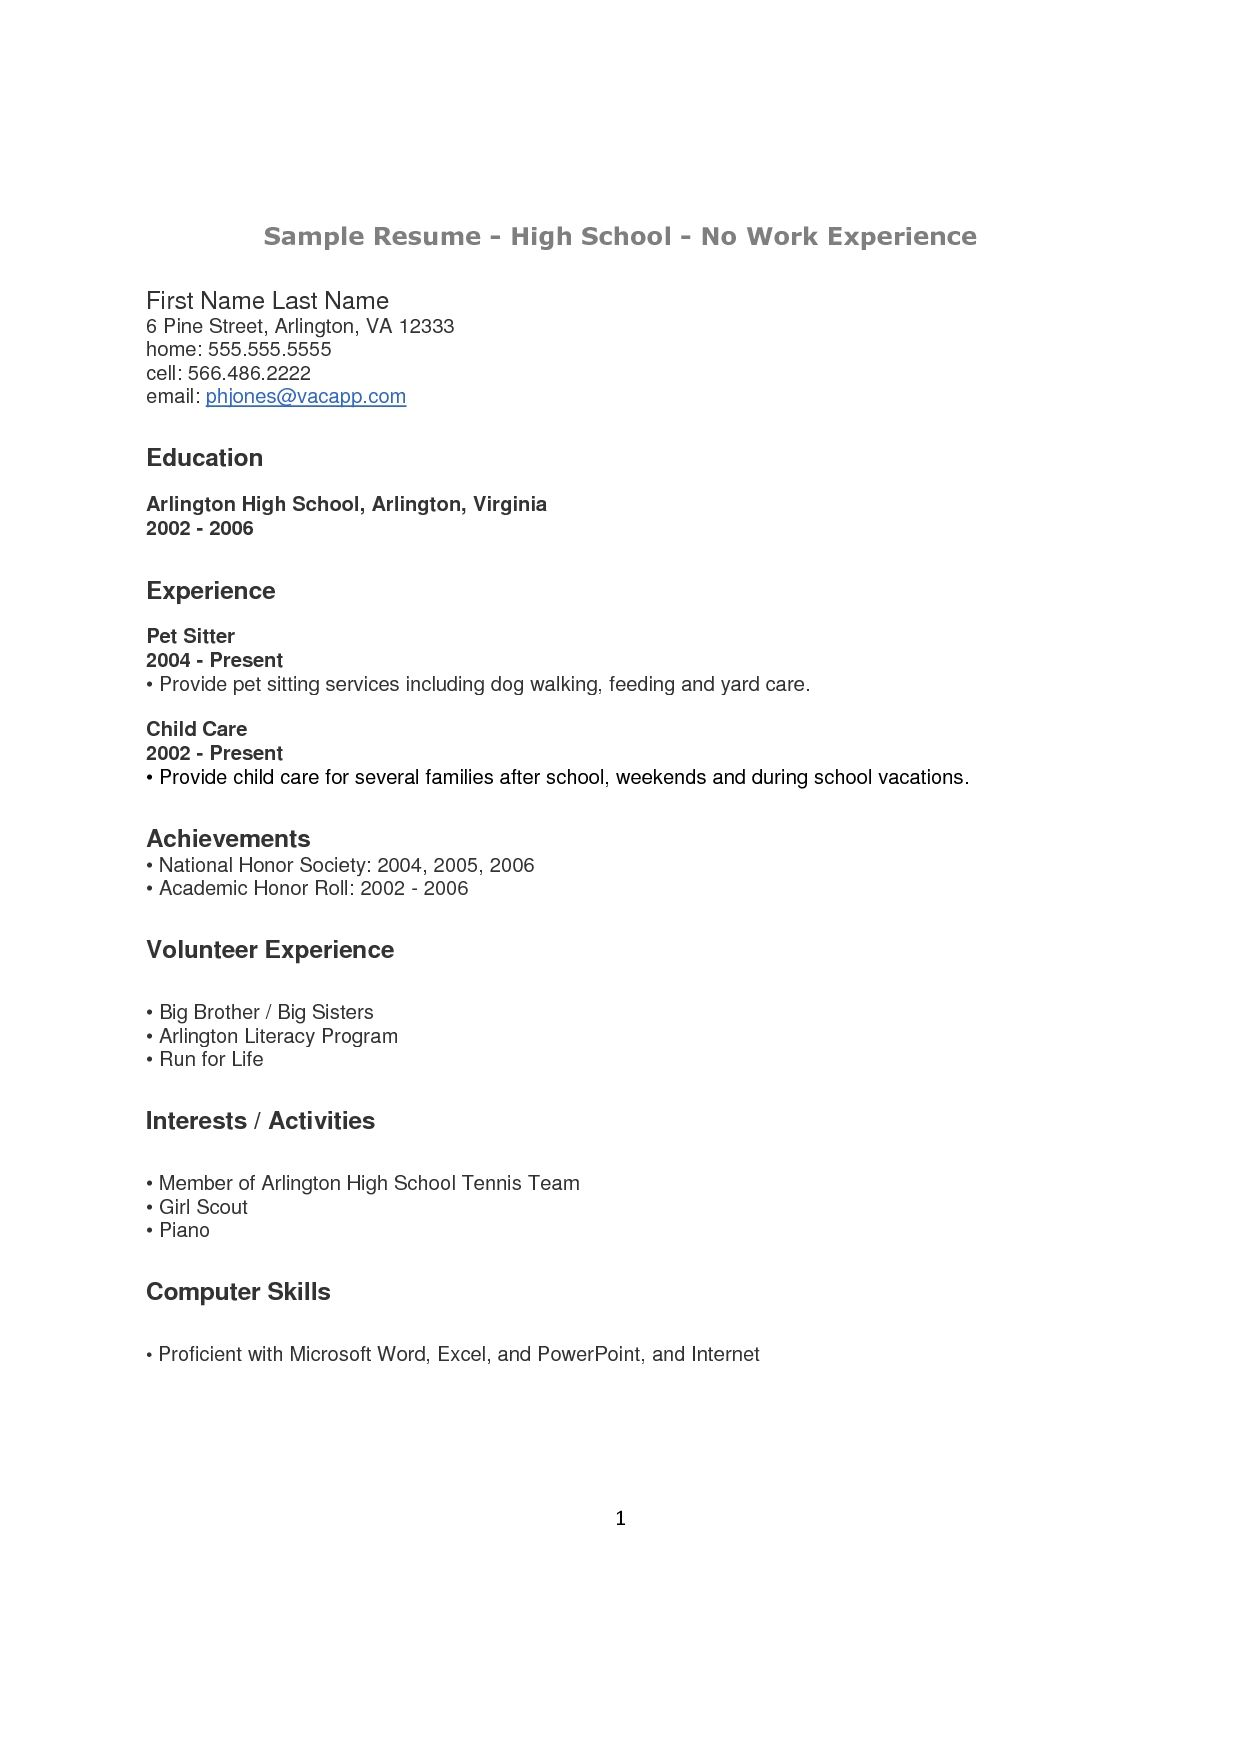 High School Student Resume With No Work Experience Examples Of ...